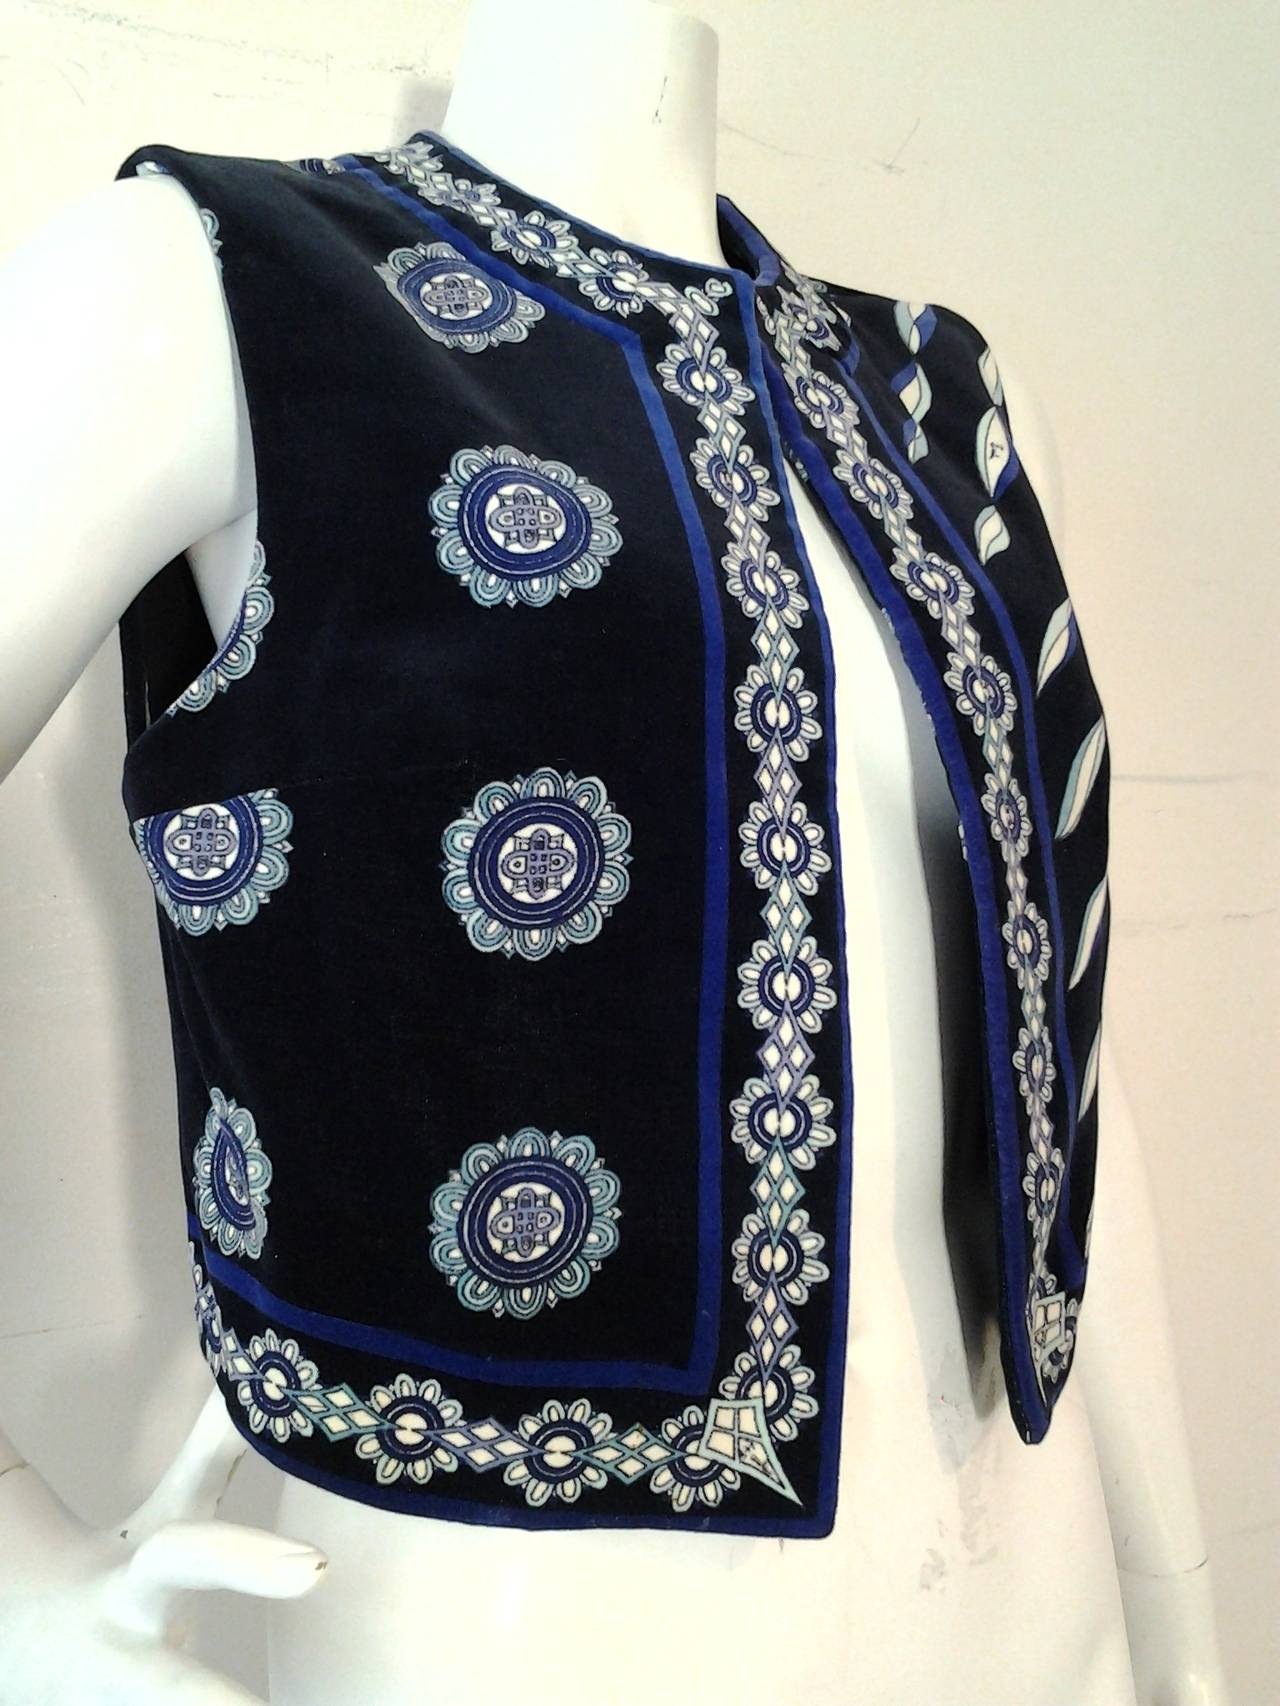 1960s Emilio Pucci Cotton Velveteen Mod Vest In Blues, Black and White 6